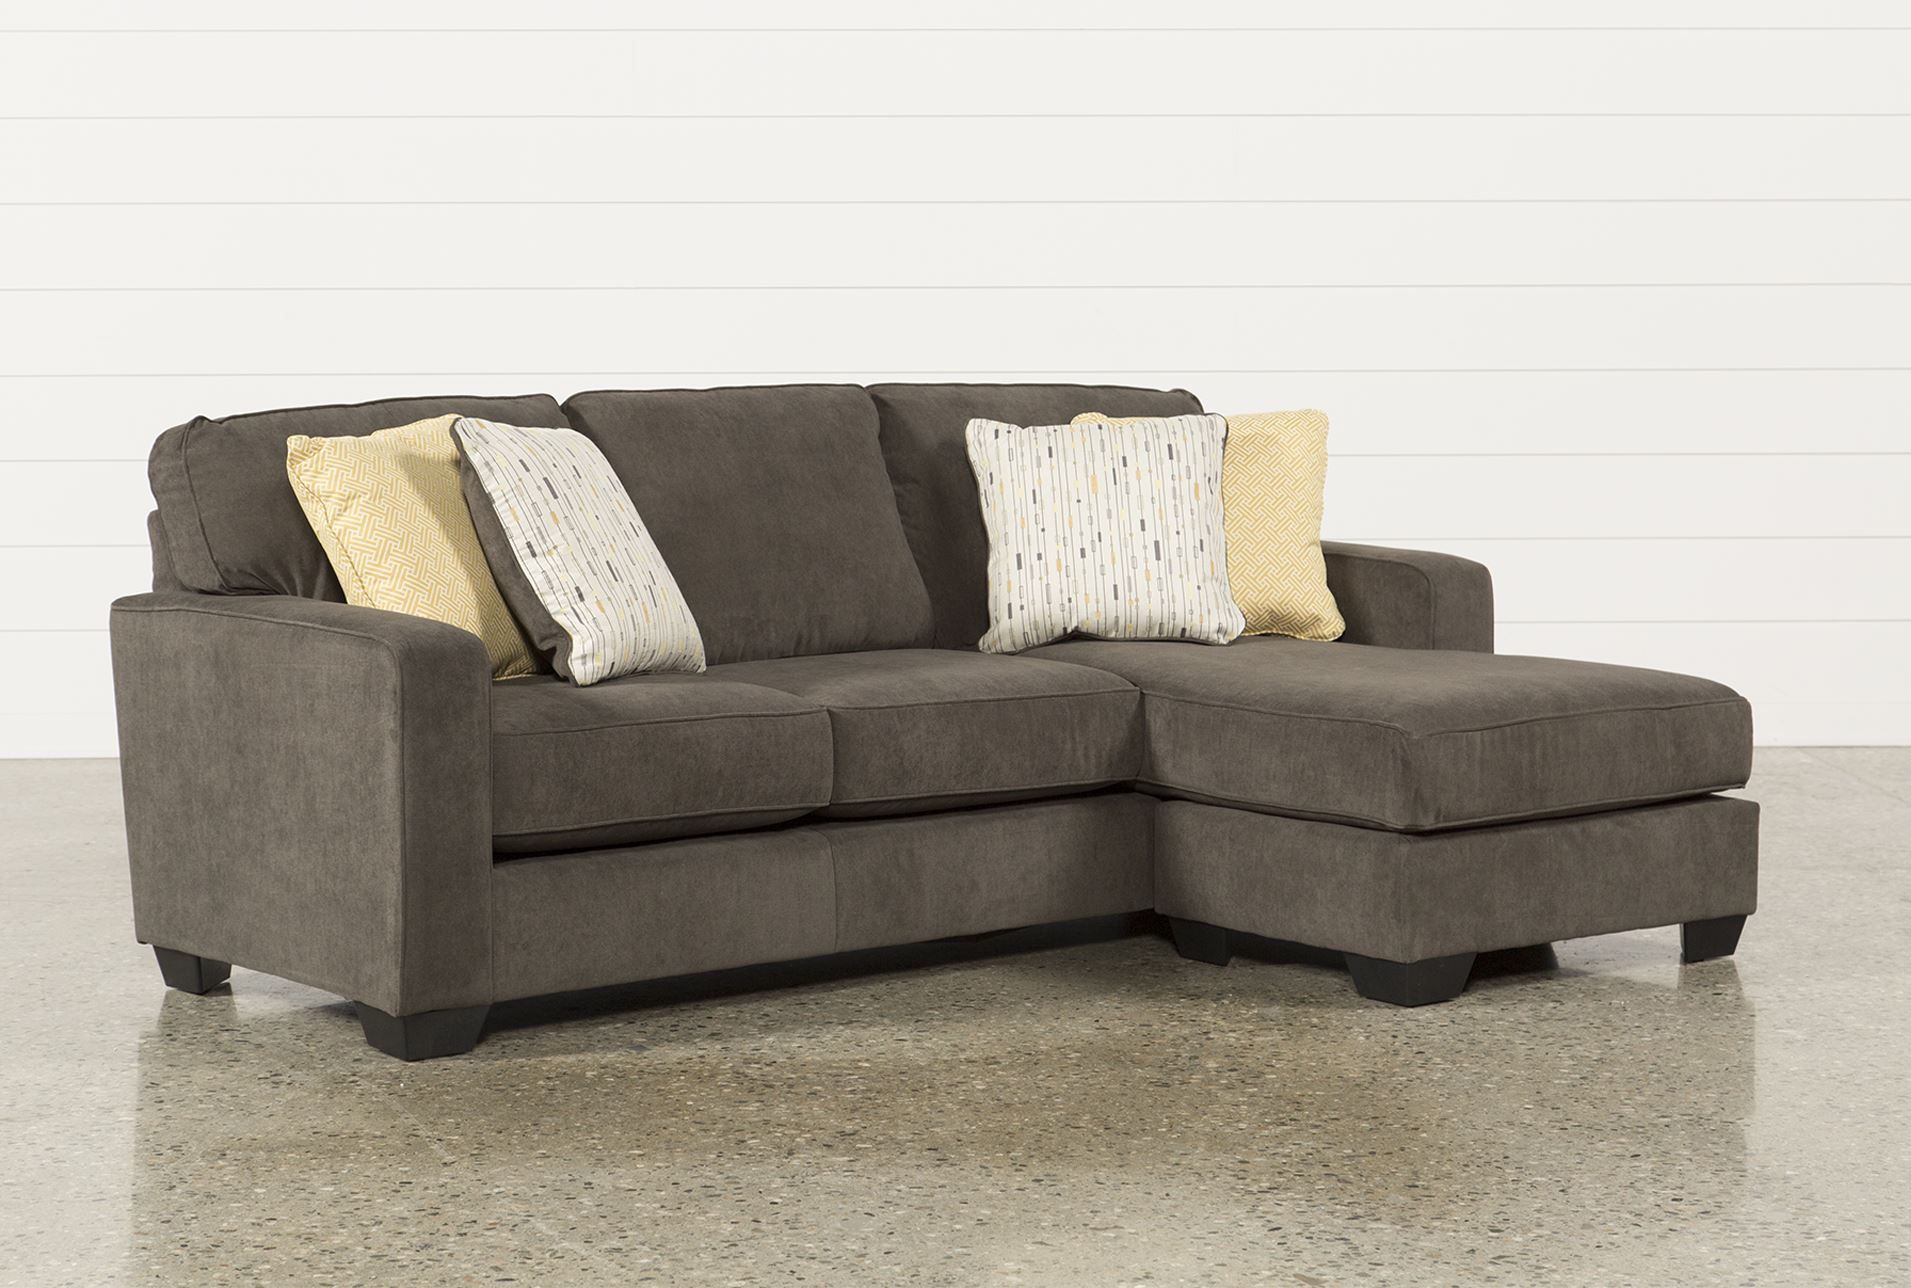 Hodan sofa chaise living spaces for Ashley furniture chaise lounge couch